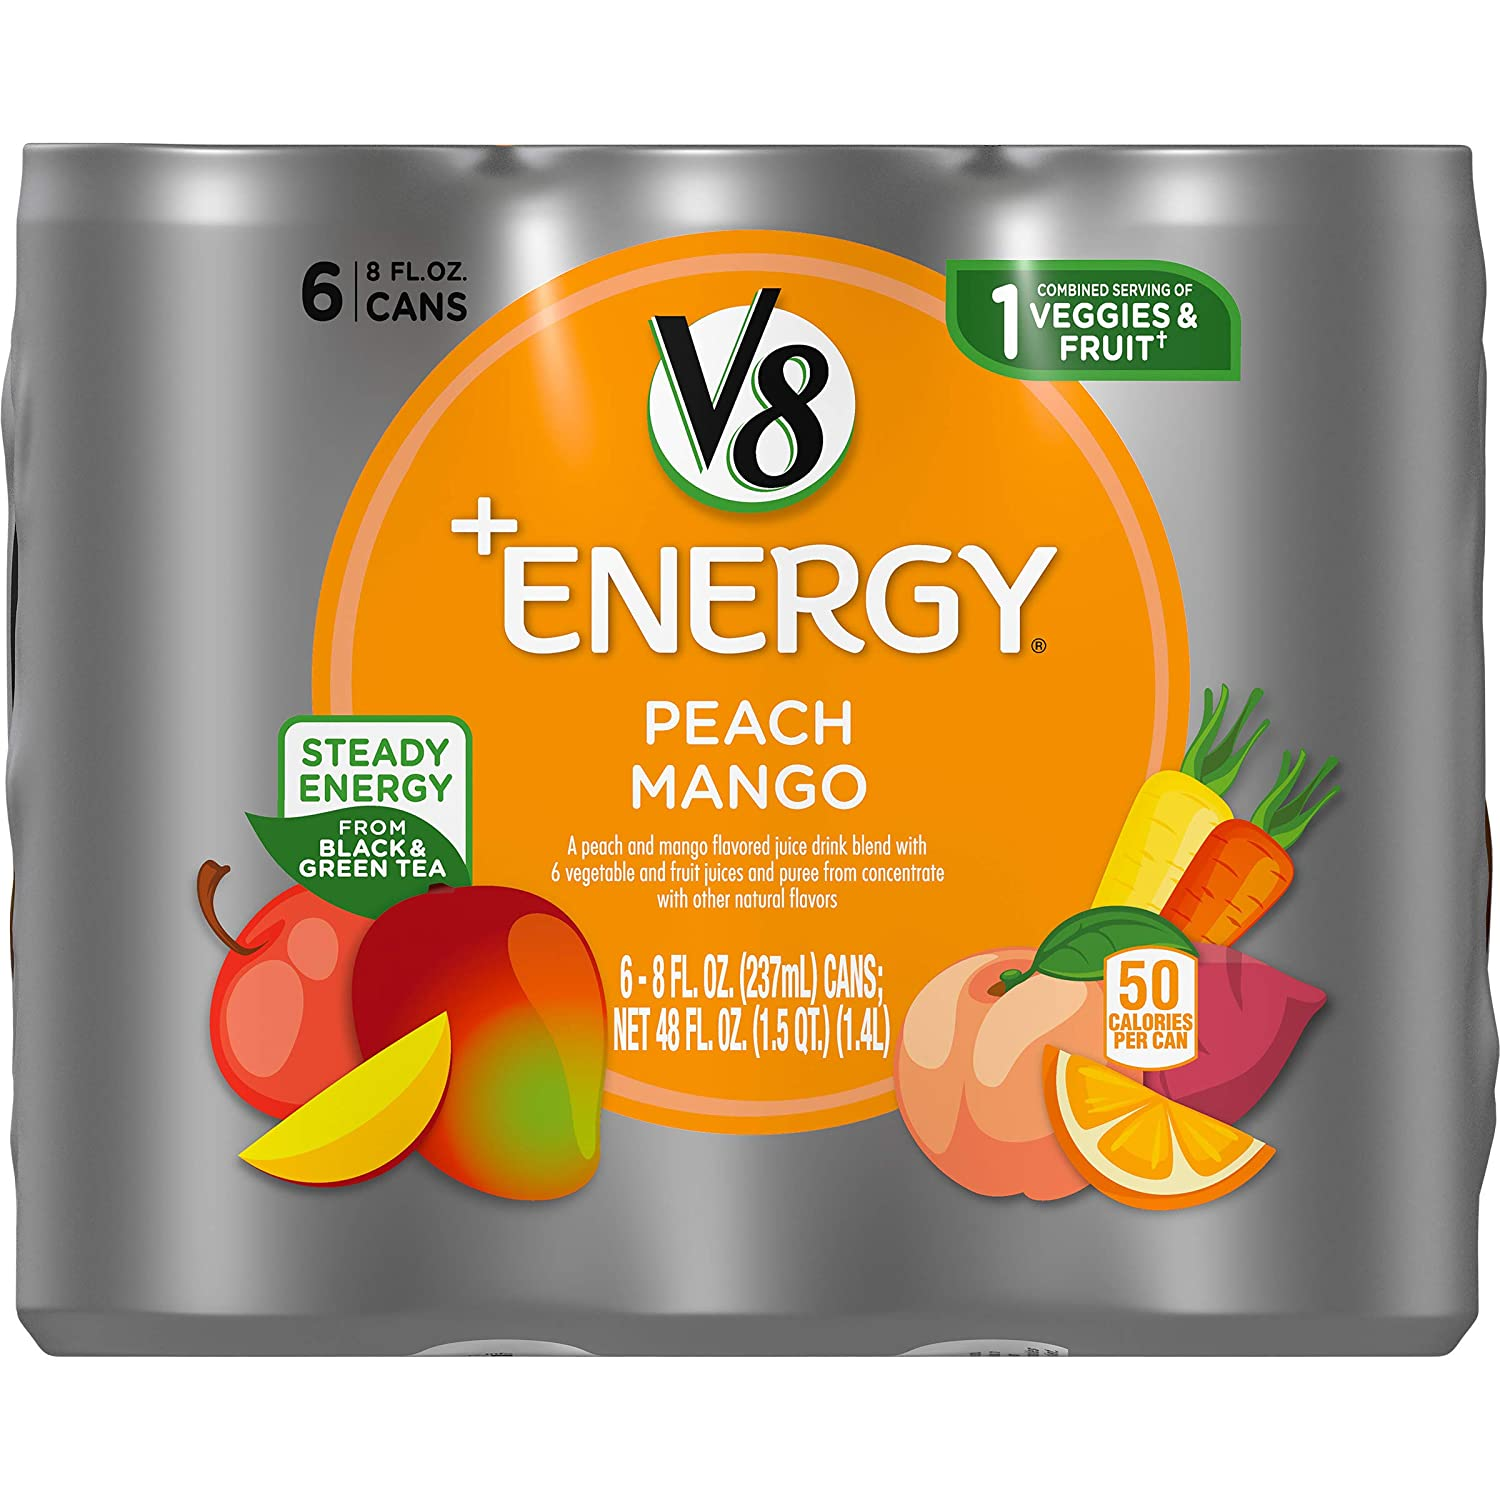 V8 +Energy, Healthy Energy Drink, Natural Energy from Tea, Peach Mango, 8 Ounce Can (4 Packs of 6, Total of 24)